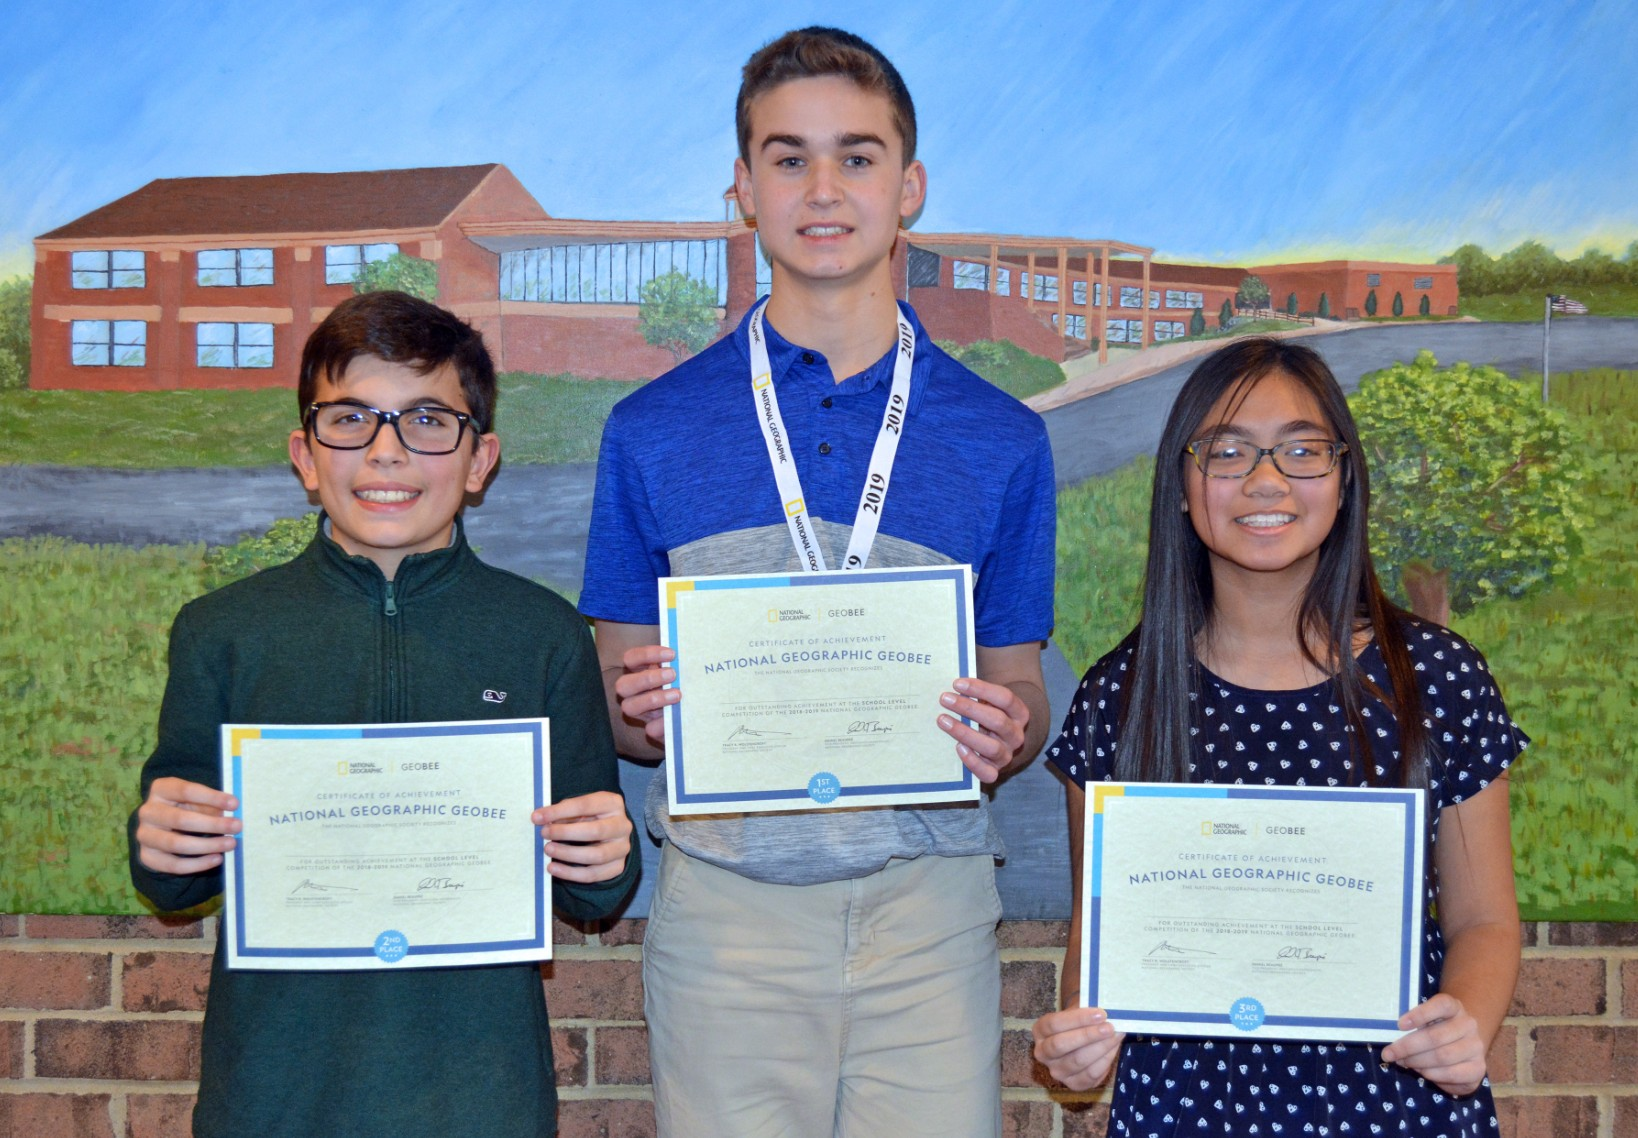 EIGHTH GRADER SAM MCKEOWN PLACES 1ST IN INDY GEOGRAPHIC BEE